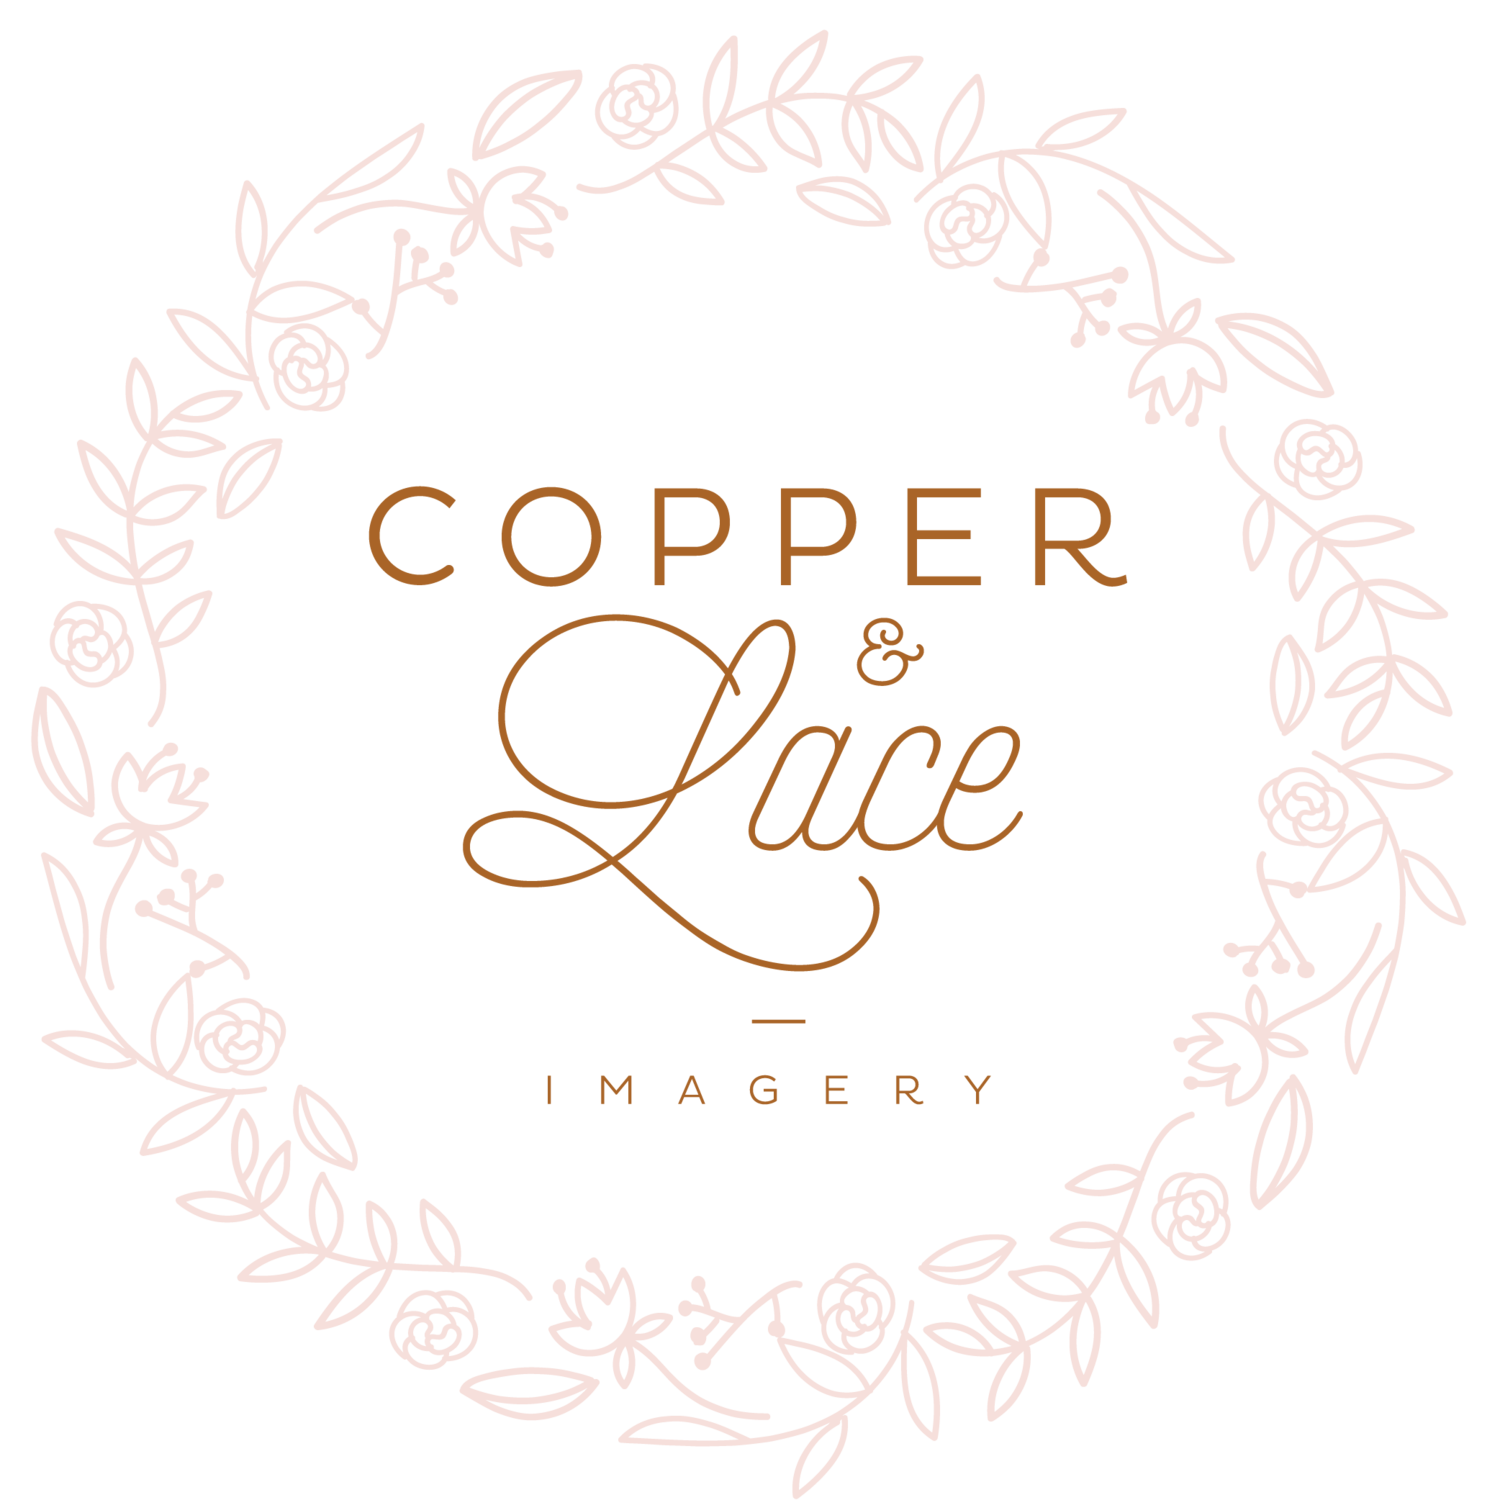 Copper & Lace Imagery